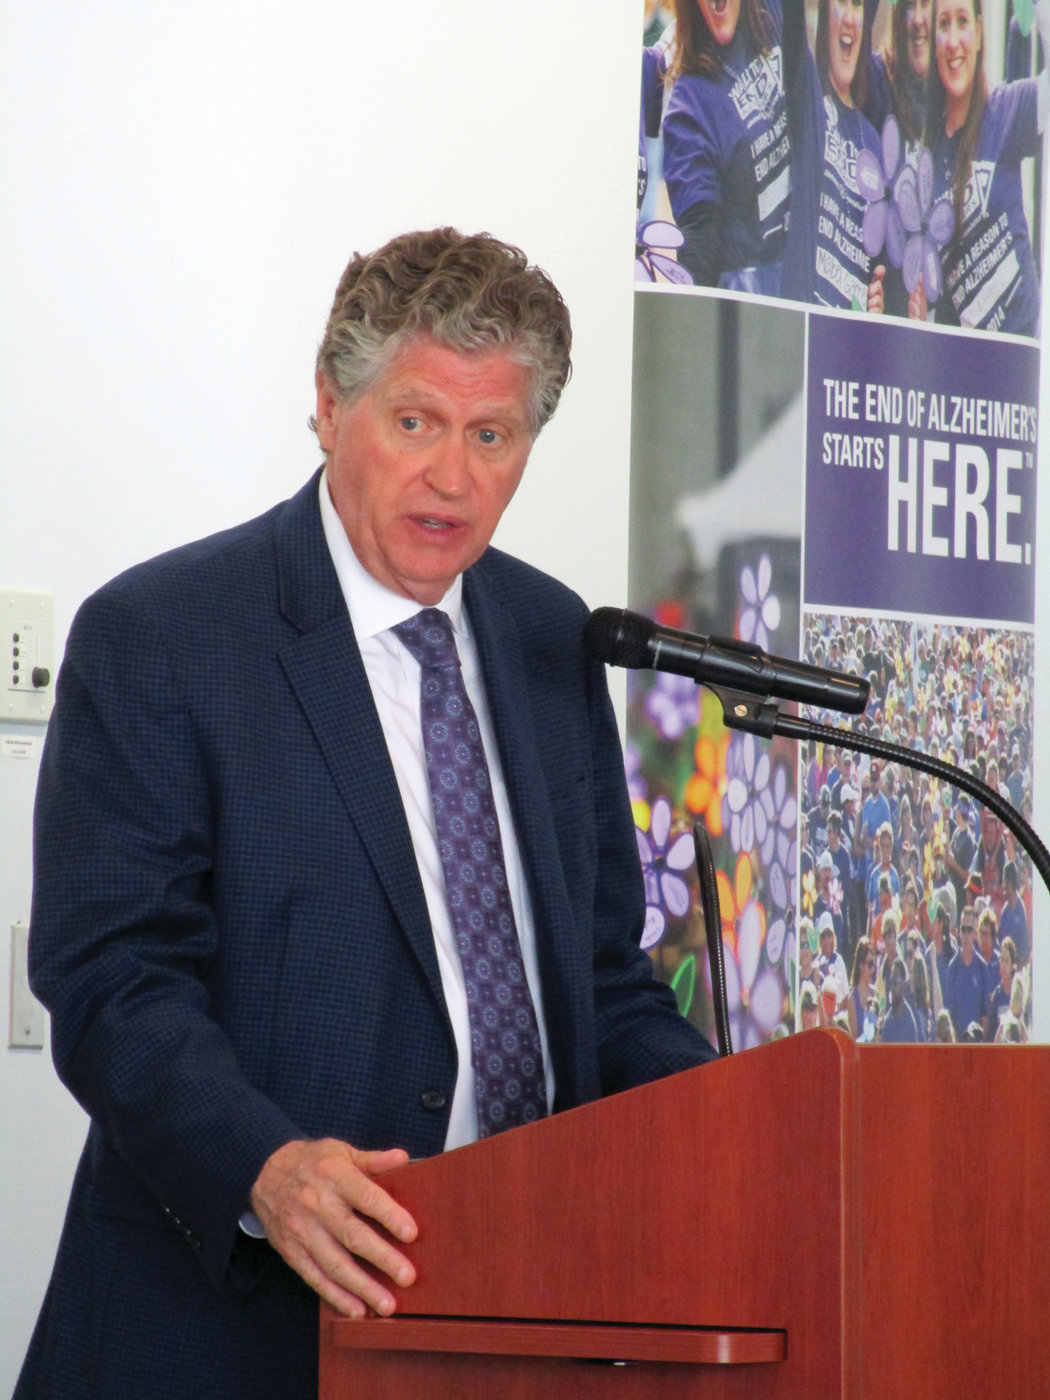 STATE'S PROGRESS: Lt. Gov. Dan McKee who leads the state's Alzheimer's Executive Board, said Rhode Island has taken steps to improve its plan for dealing with the impacts of Alzheimer's disease.